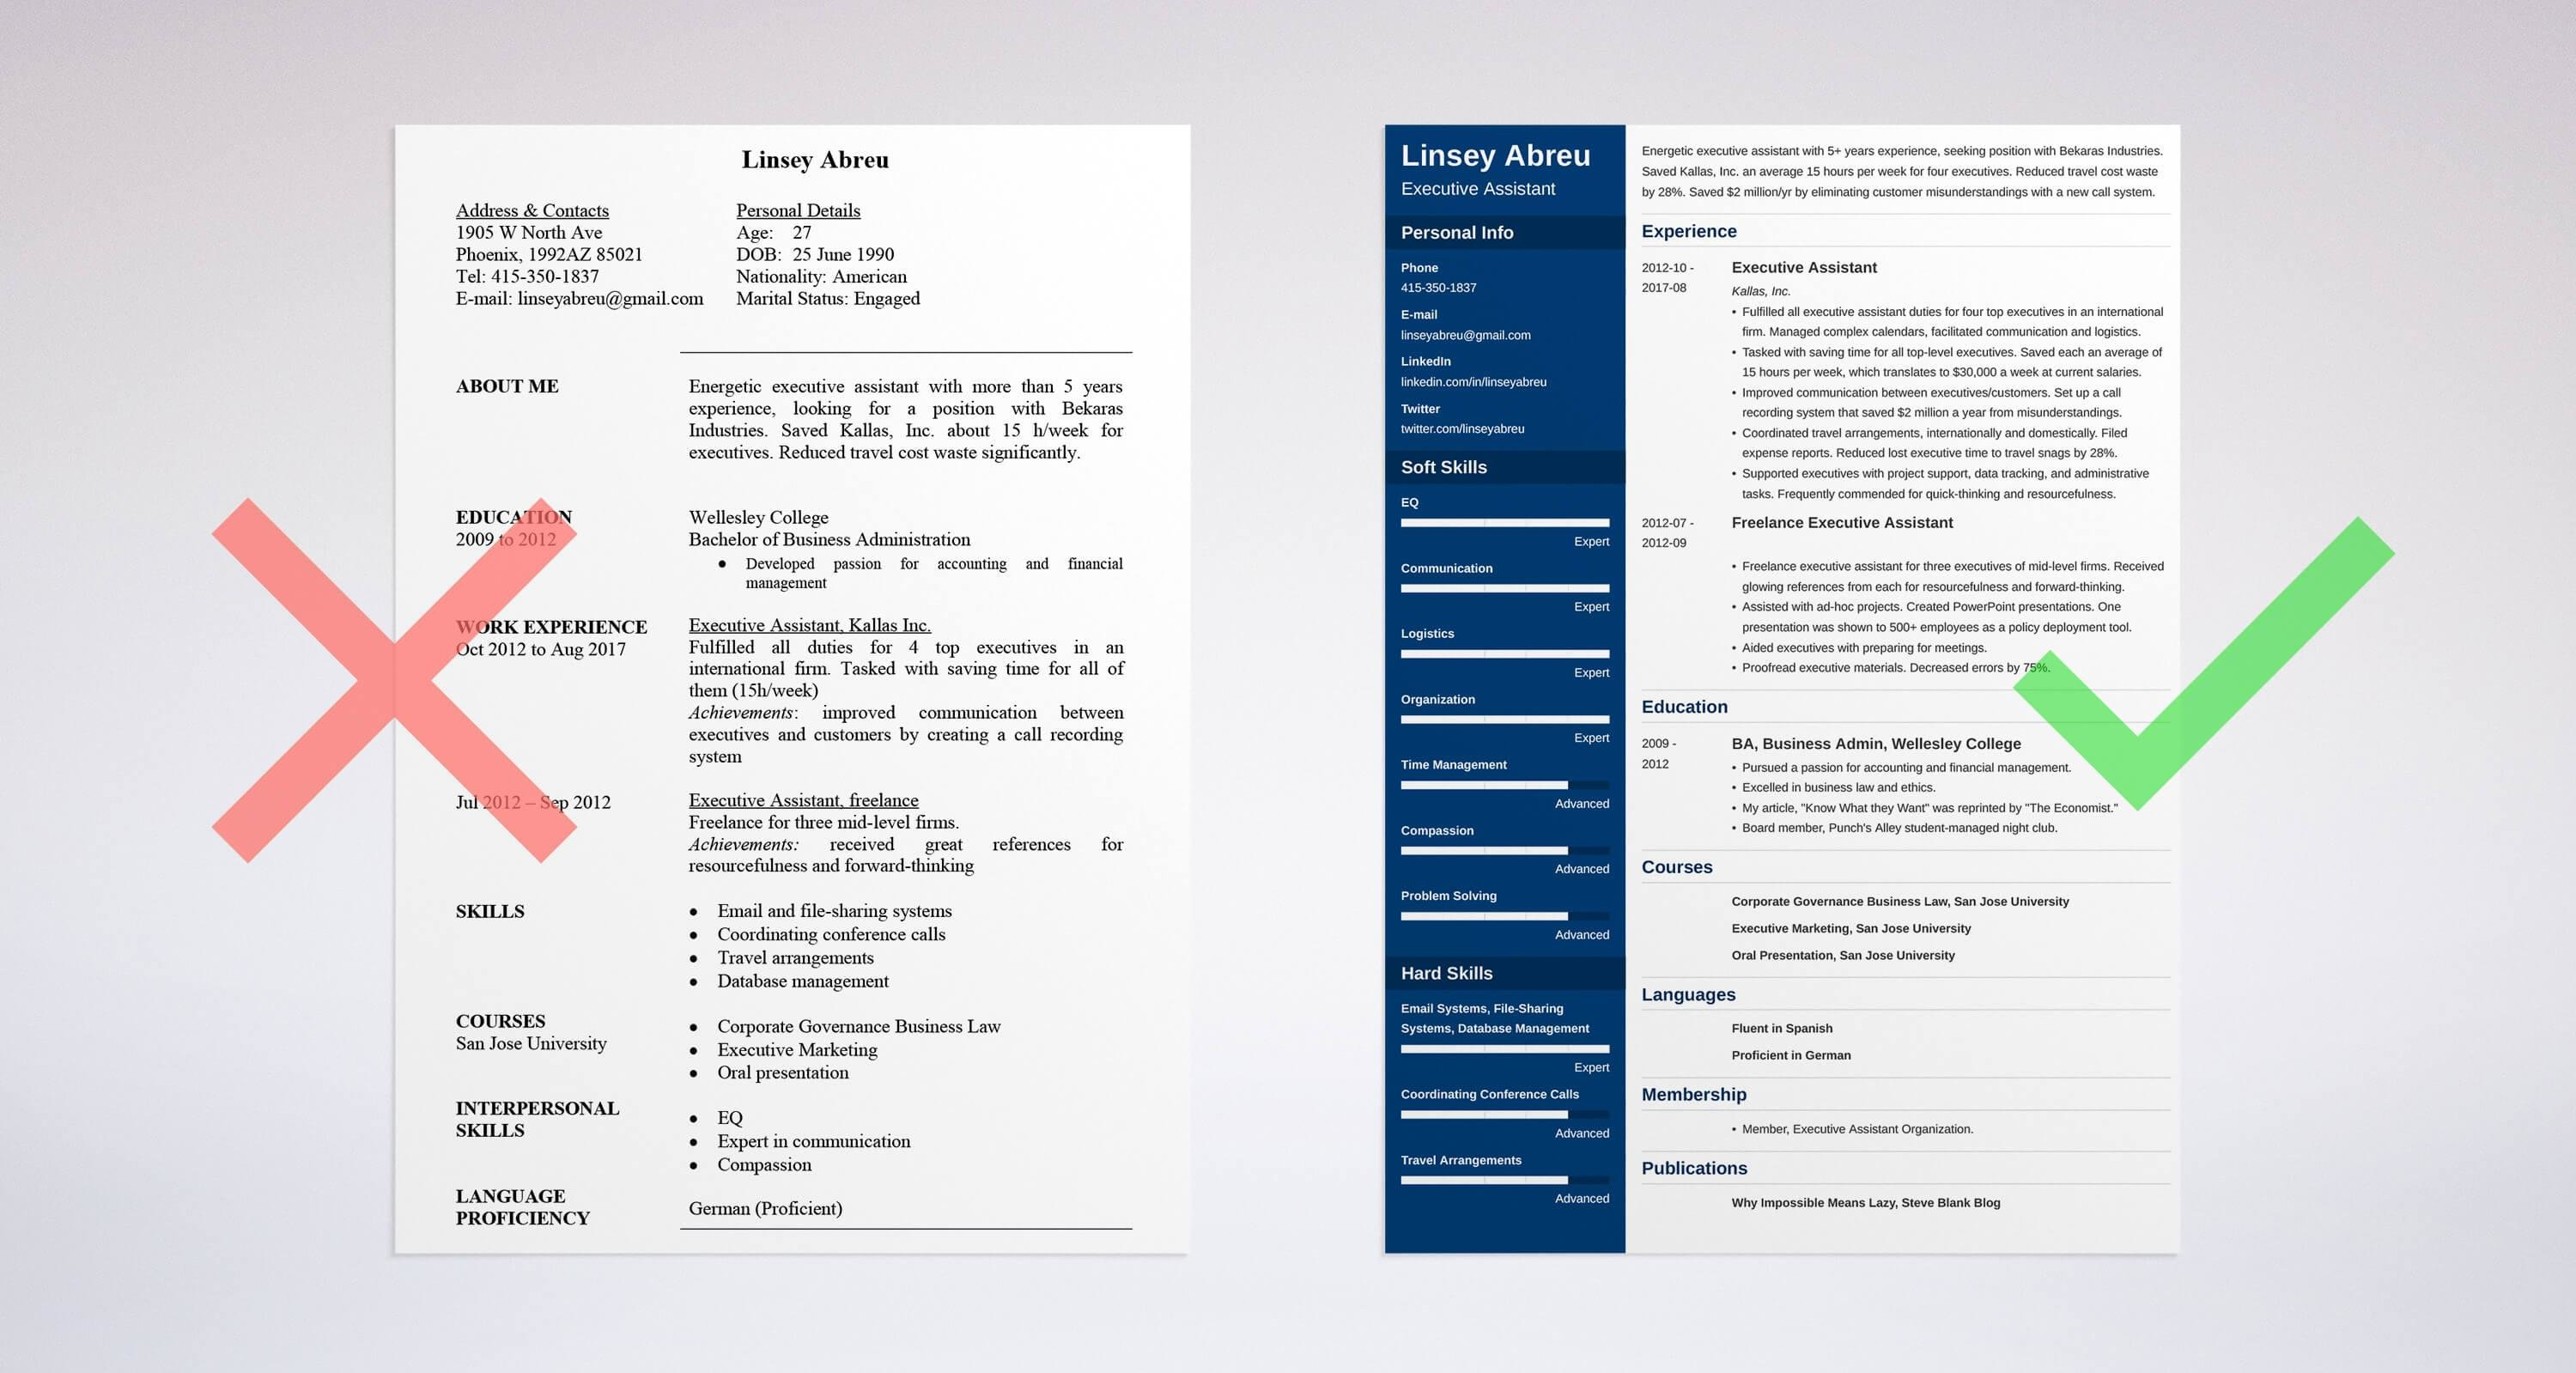 Executive Assistant Resume: Sample U0026 Complete Guide [20+ Examples]